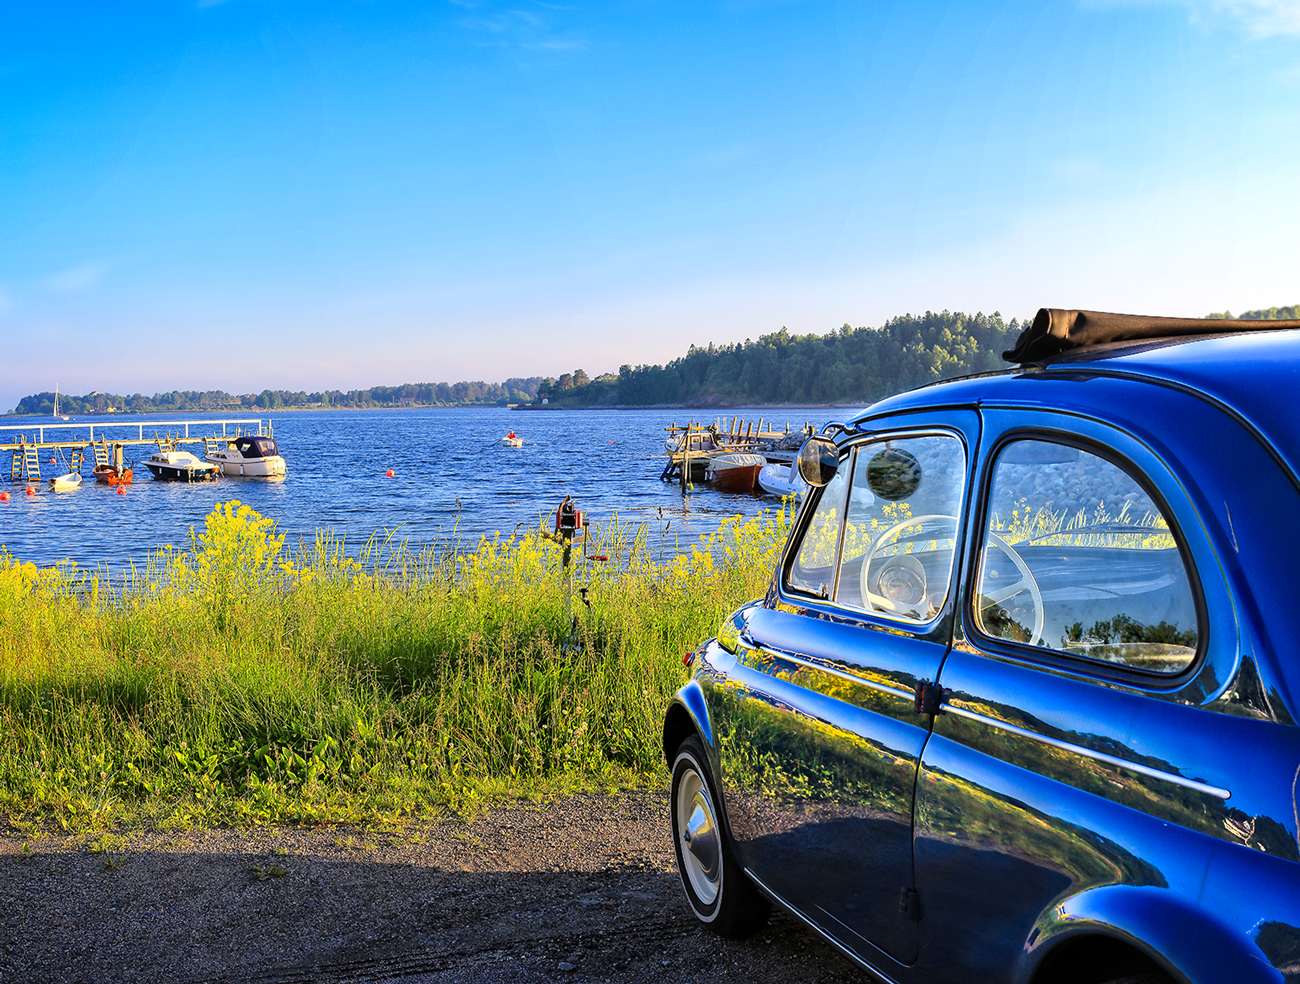 You can discover Larkollens´s world just a short drive (45 min) from Oslo.